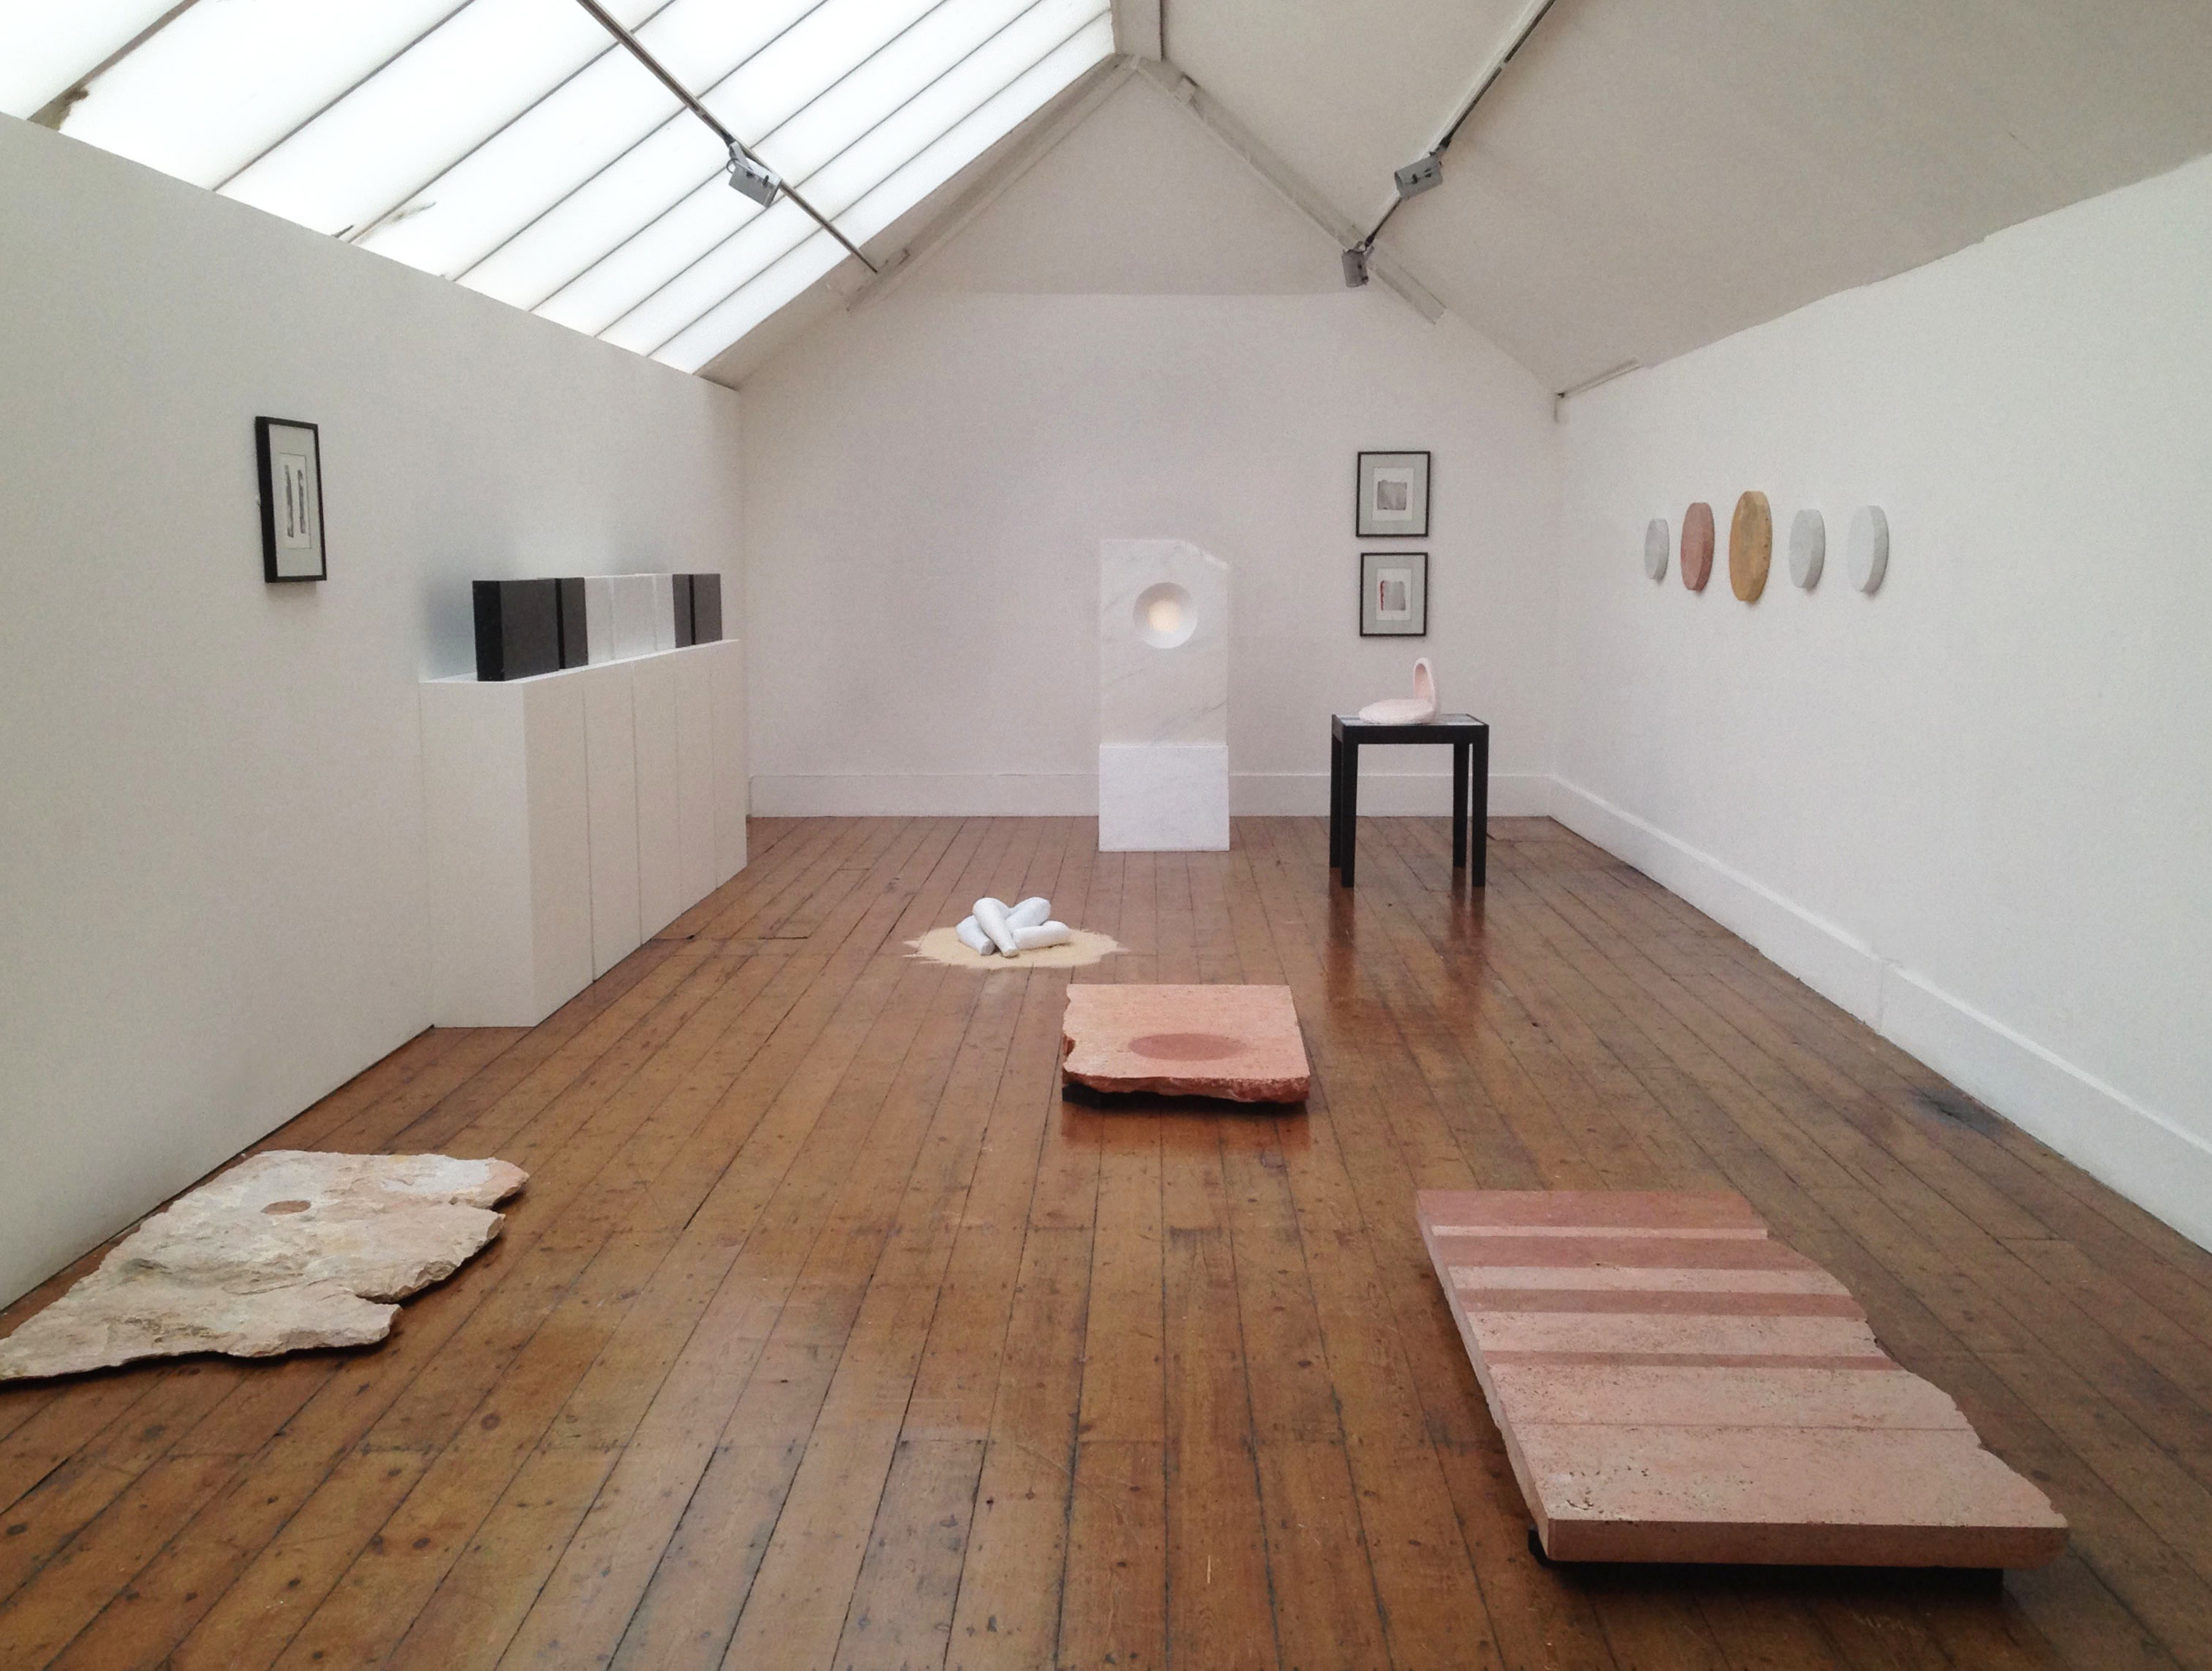 Brian Mercer Residency 2015 Award Winners Exhibition, Royal British Sculptors 2016 - Mary Bourne